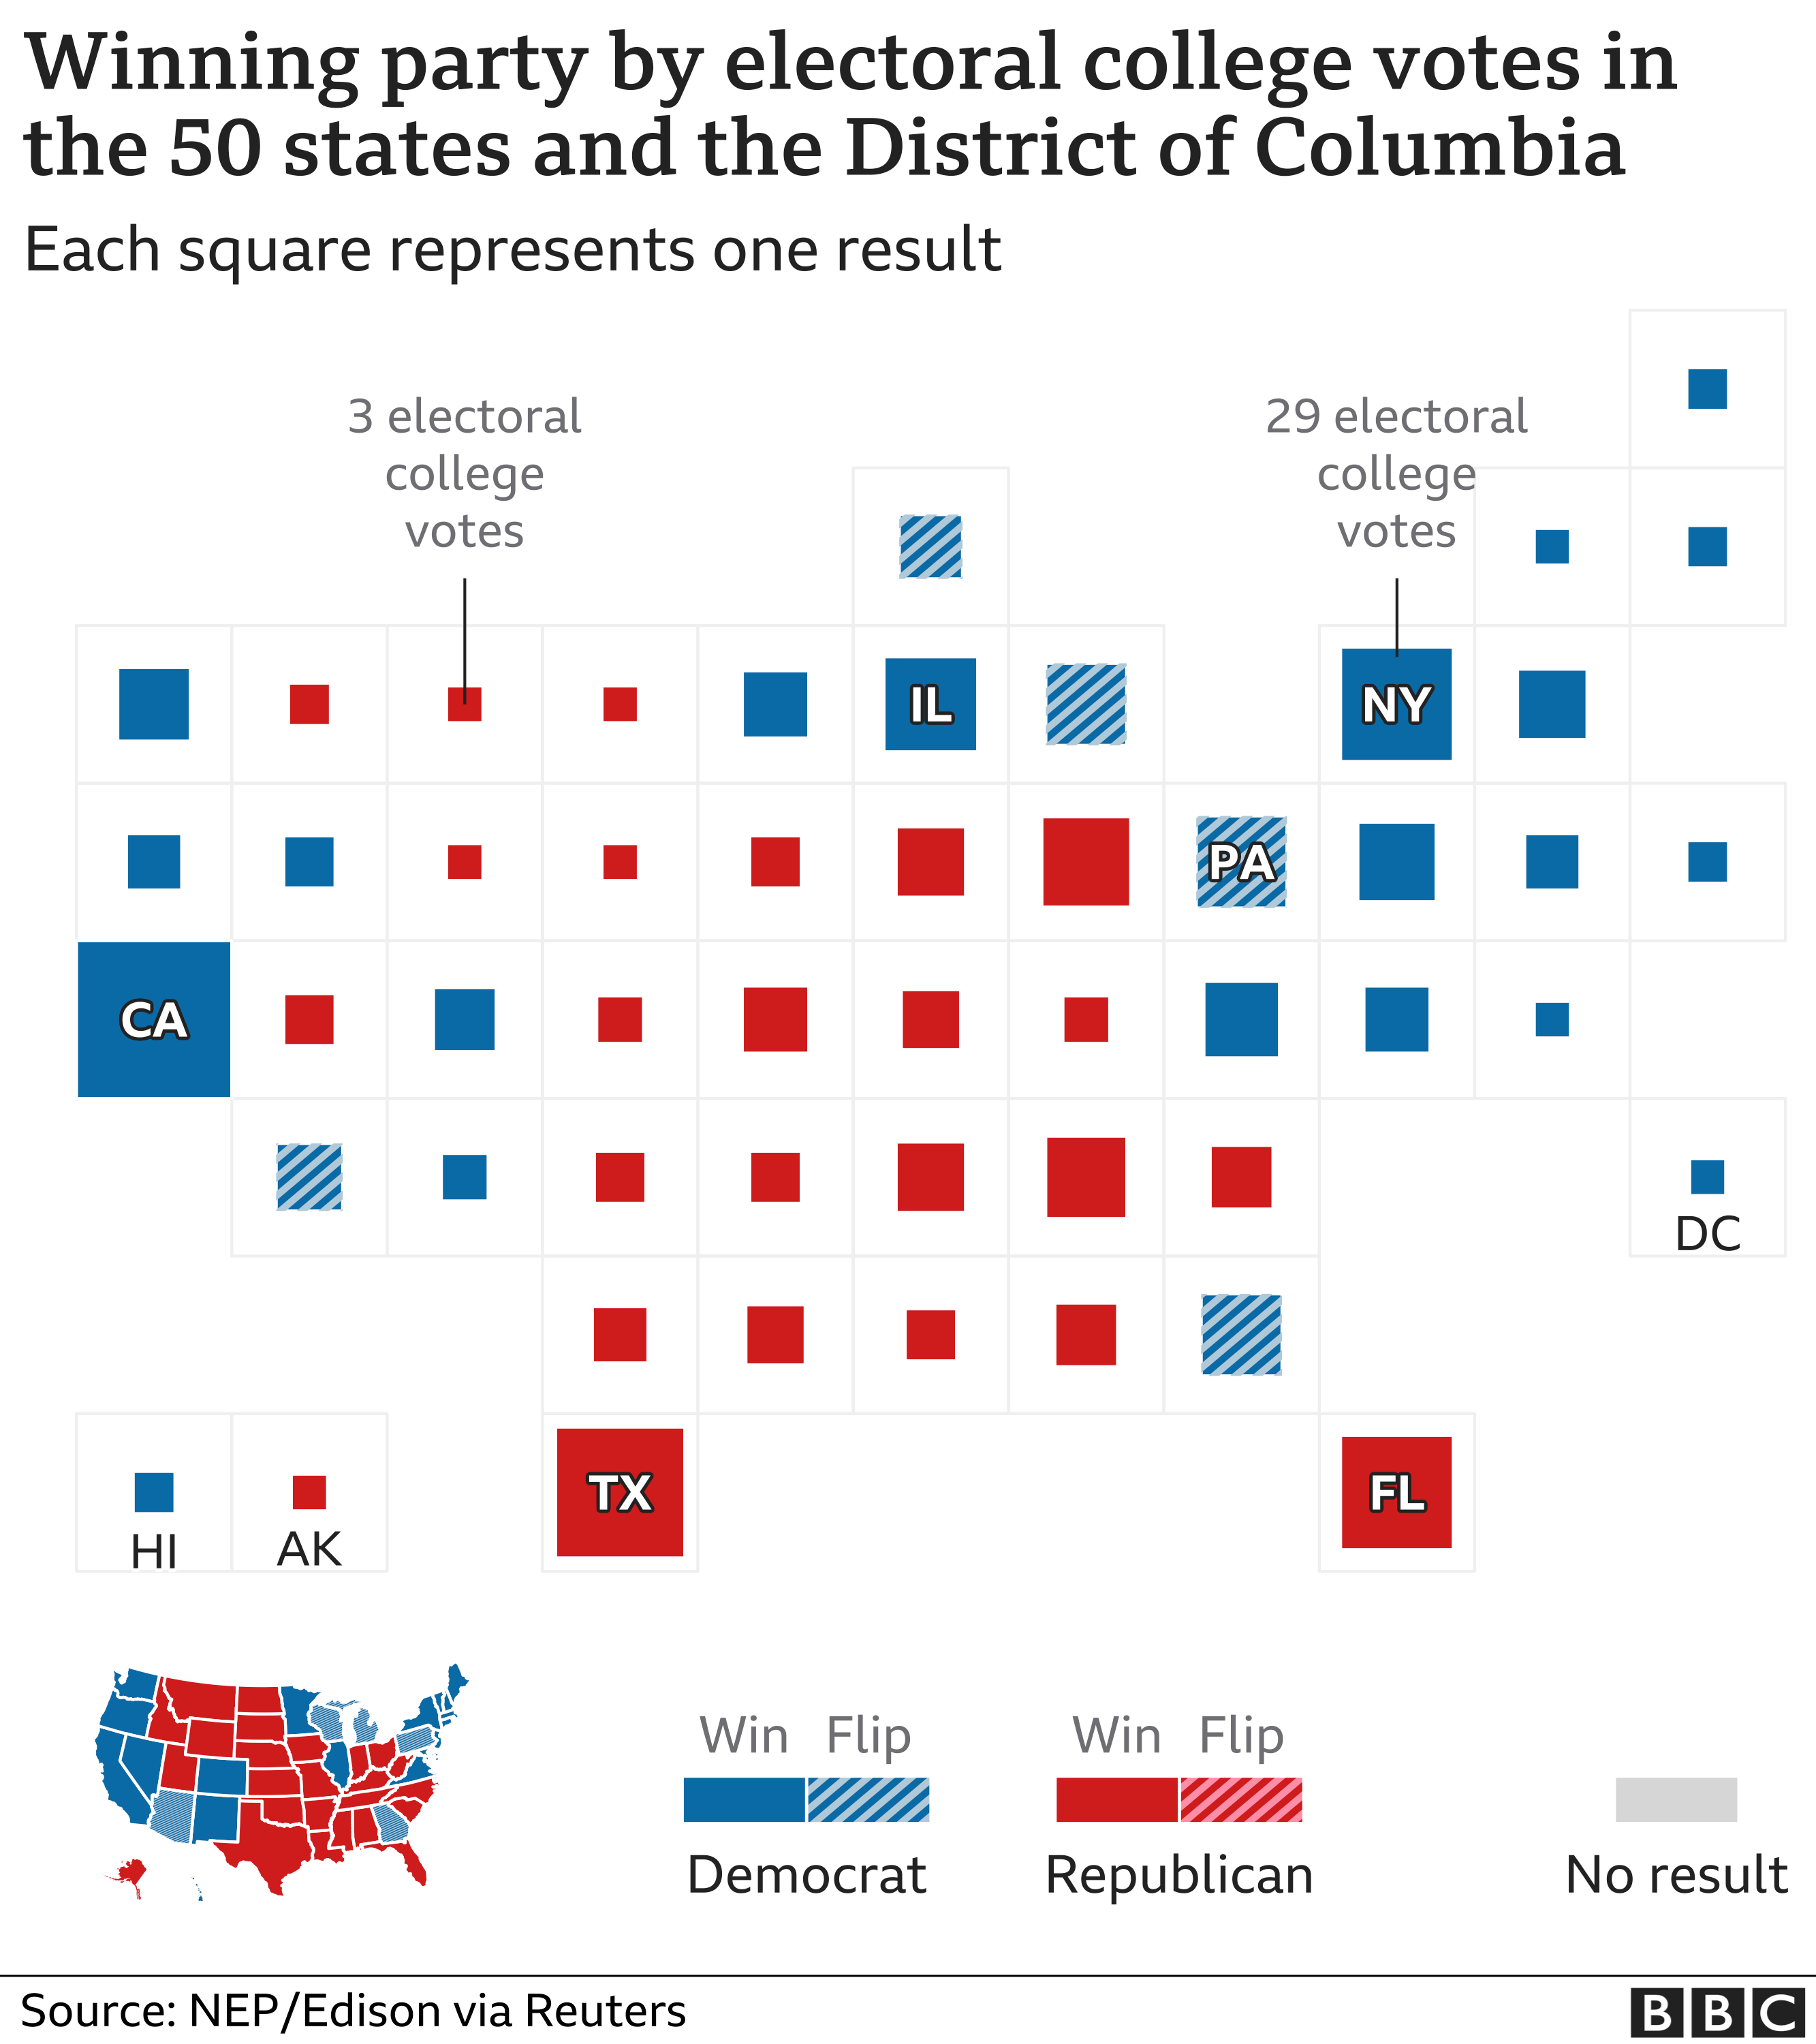 Cartogram of results - each state in proportion